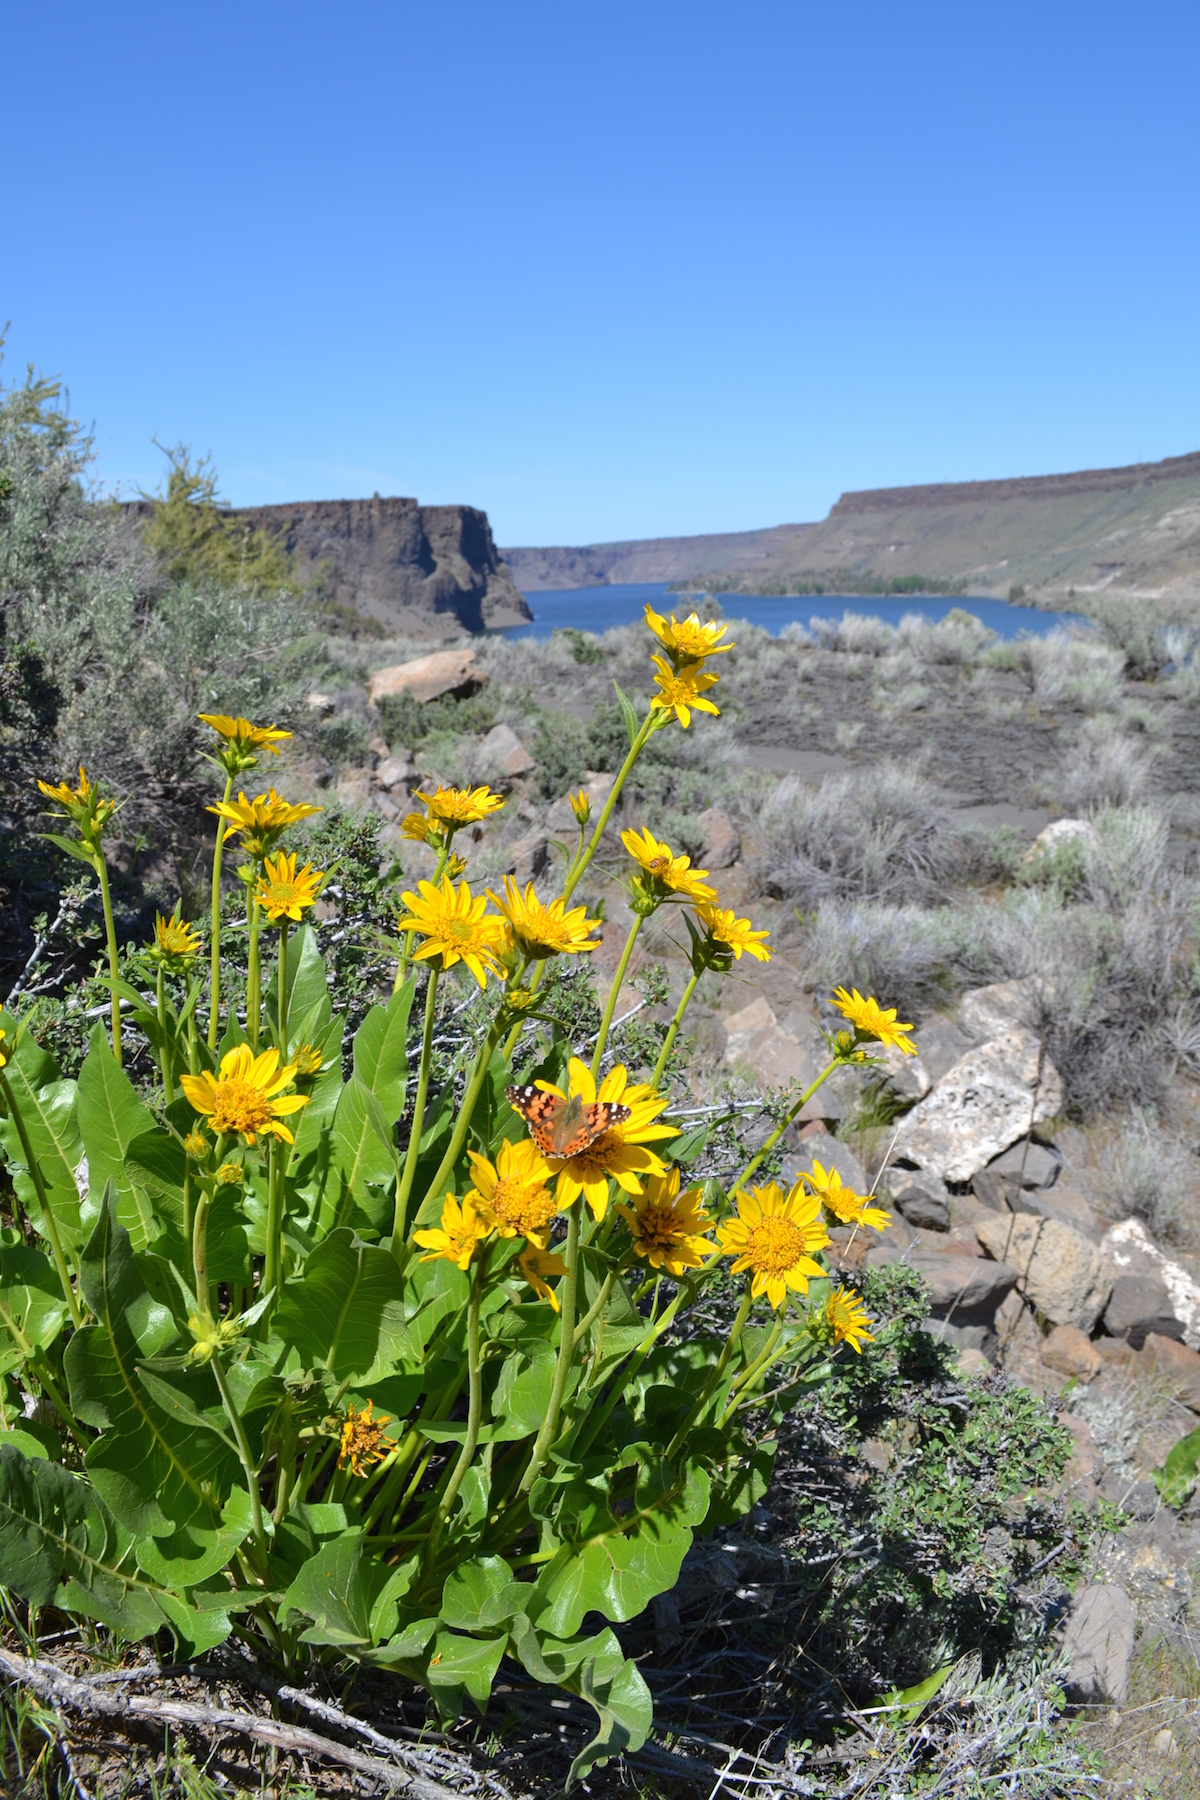 Arrowleaf Balsamroot at Cove Palisades, courtesy of Oregon Parks and Recreation Department